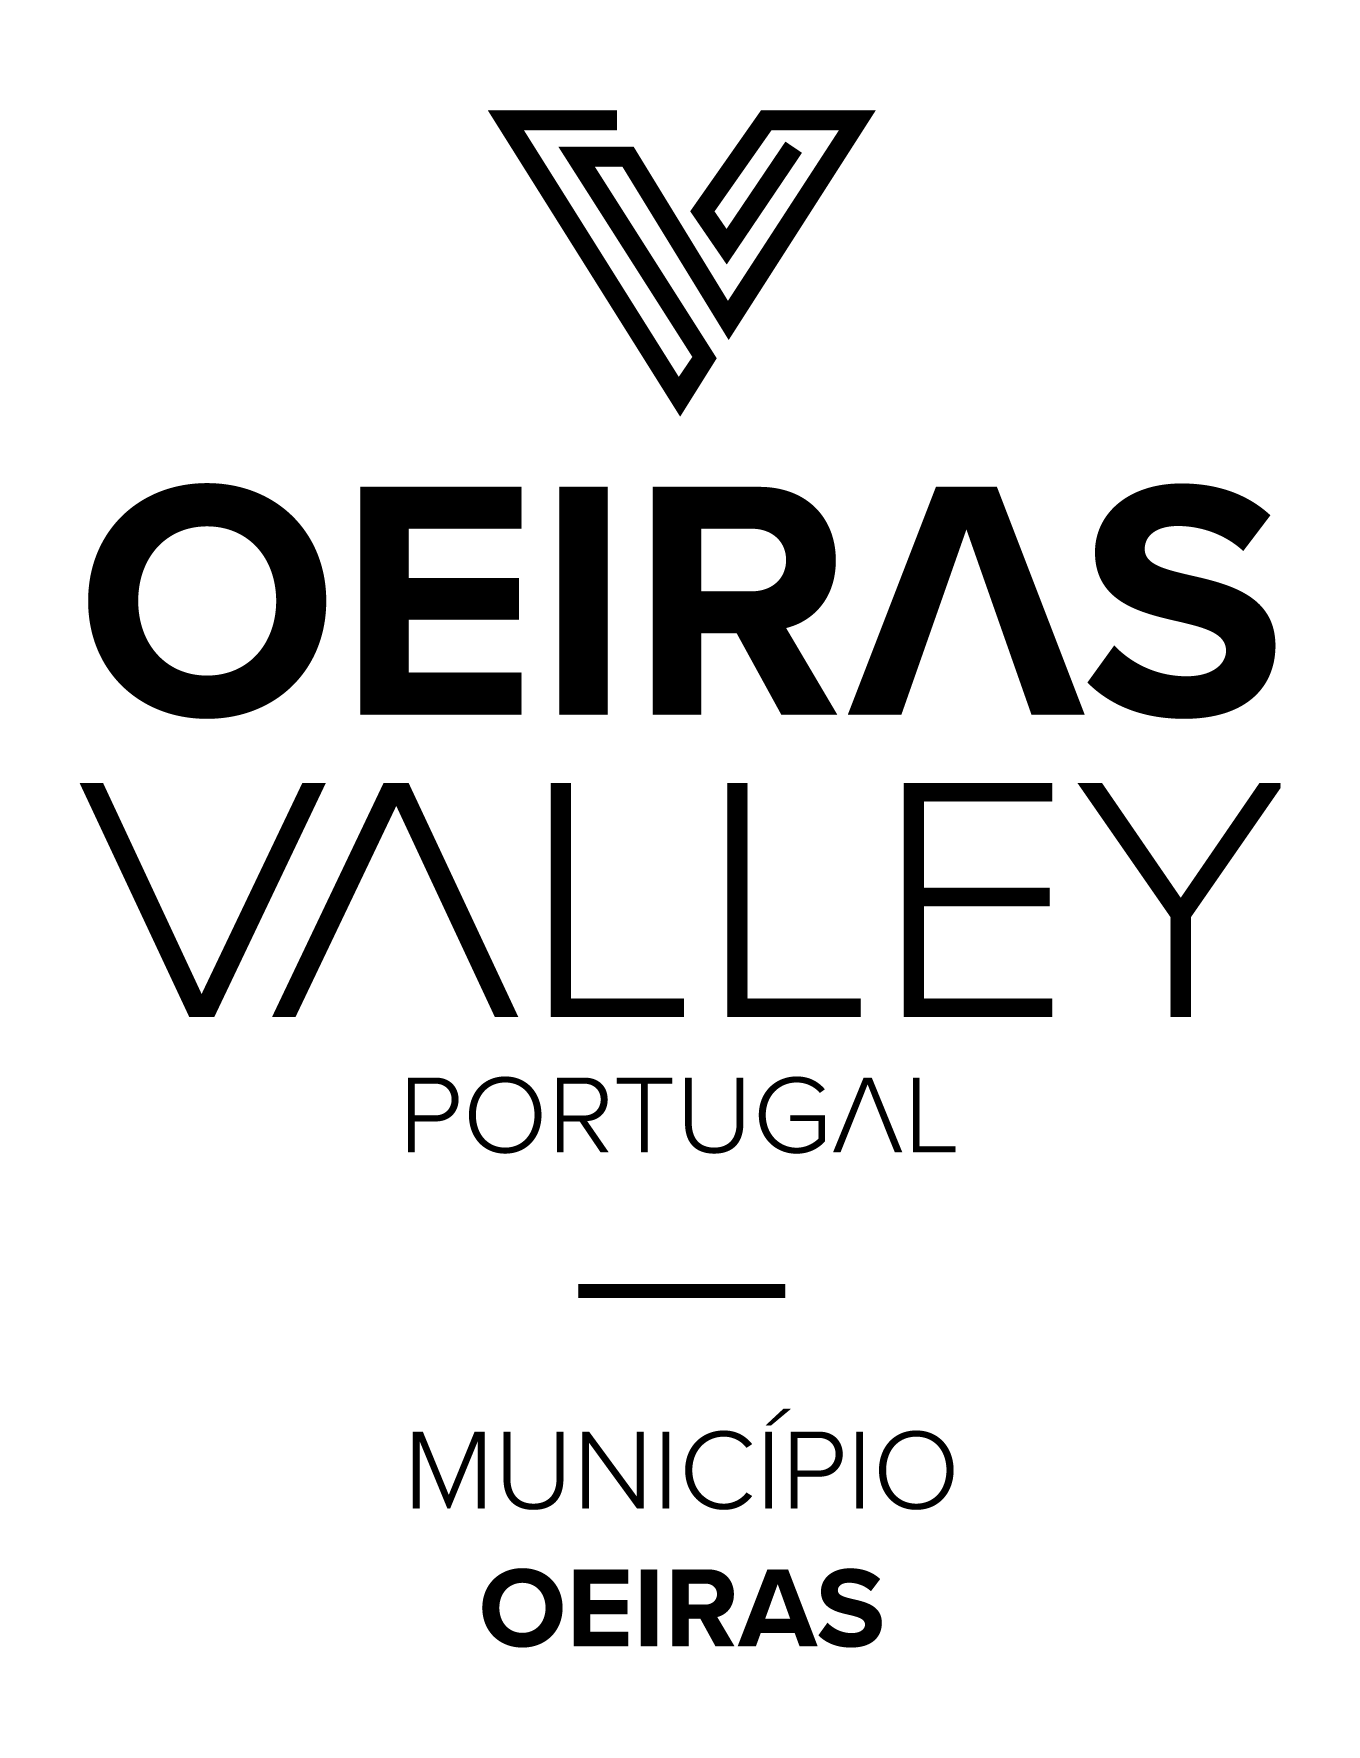 Oeiras Valley logo